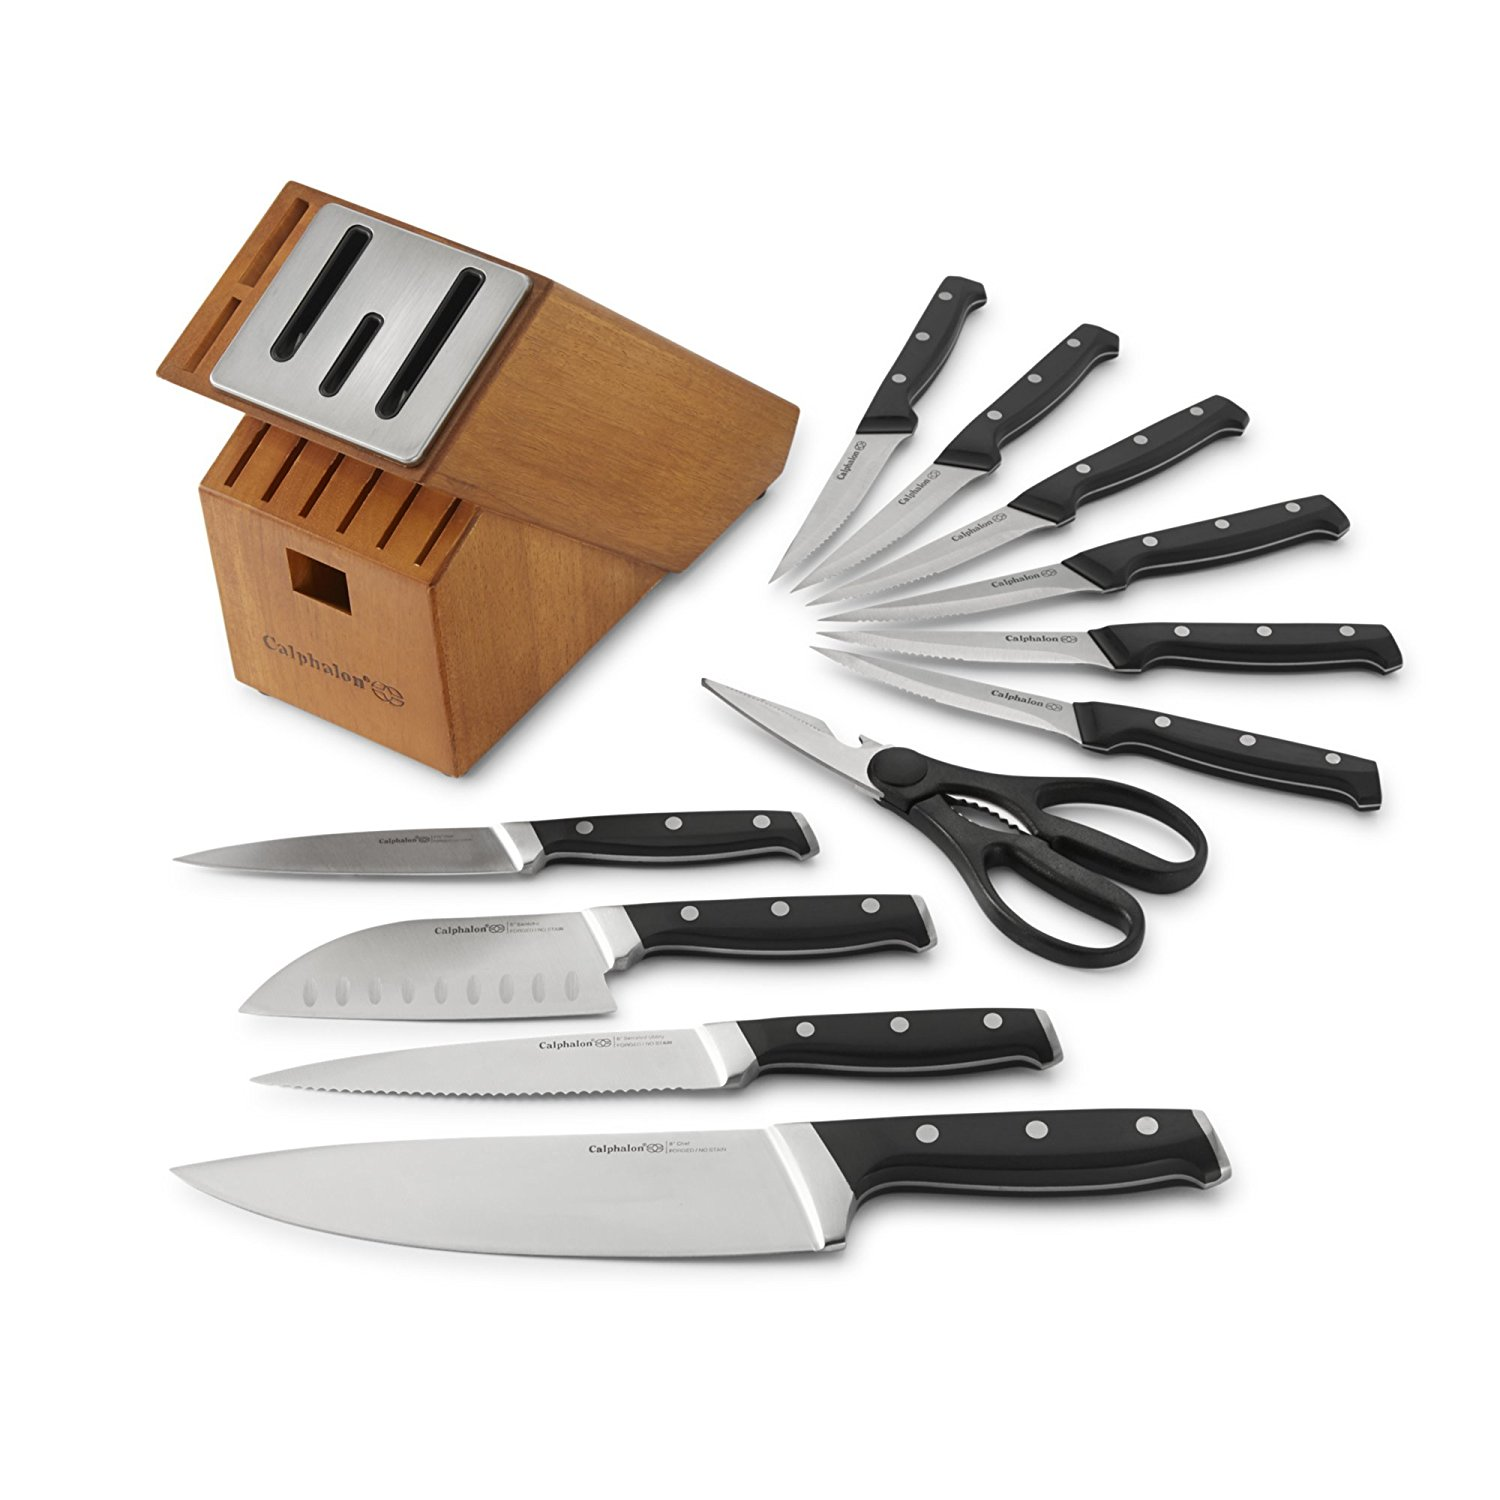 Calphalon Classic Self-Sharpening Cutlery Knife Block Set with SharpIN Technology, 12 Piece by